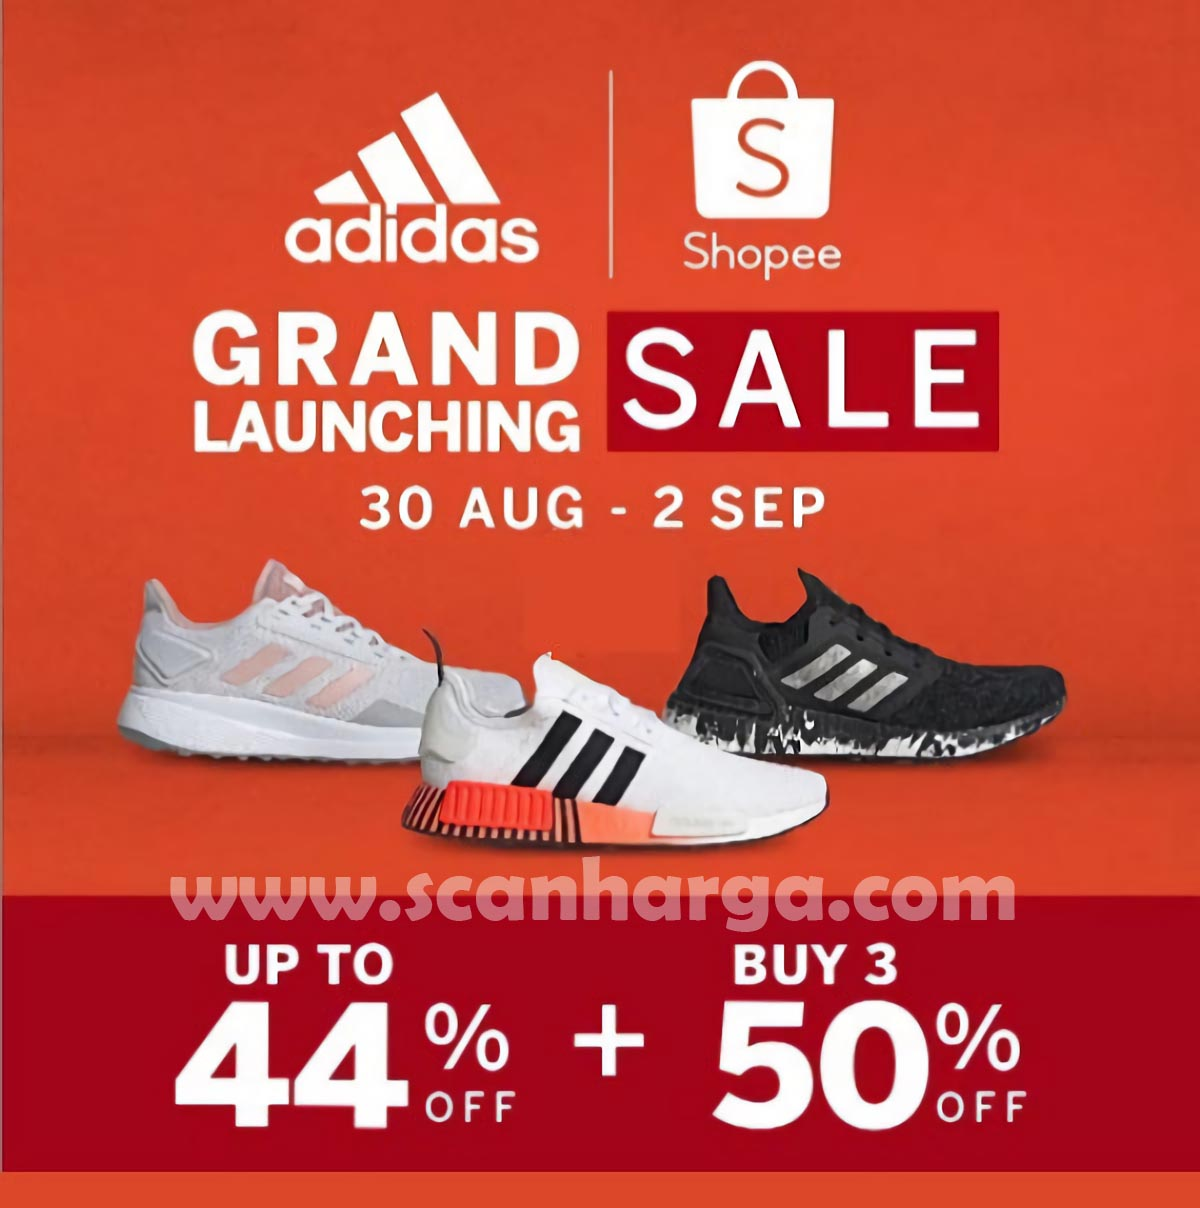 Promo Shopee Spesial Grand Launch Official Store Adidas* Up To 44% Off + Beli 3 produk DISKON 50%